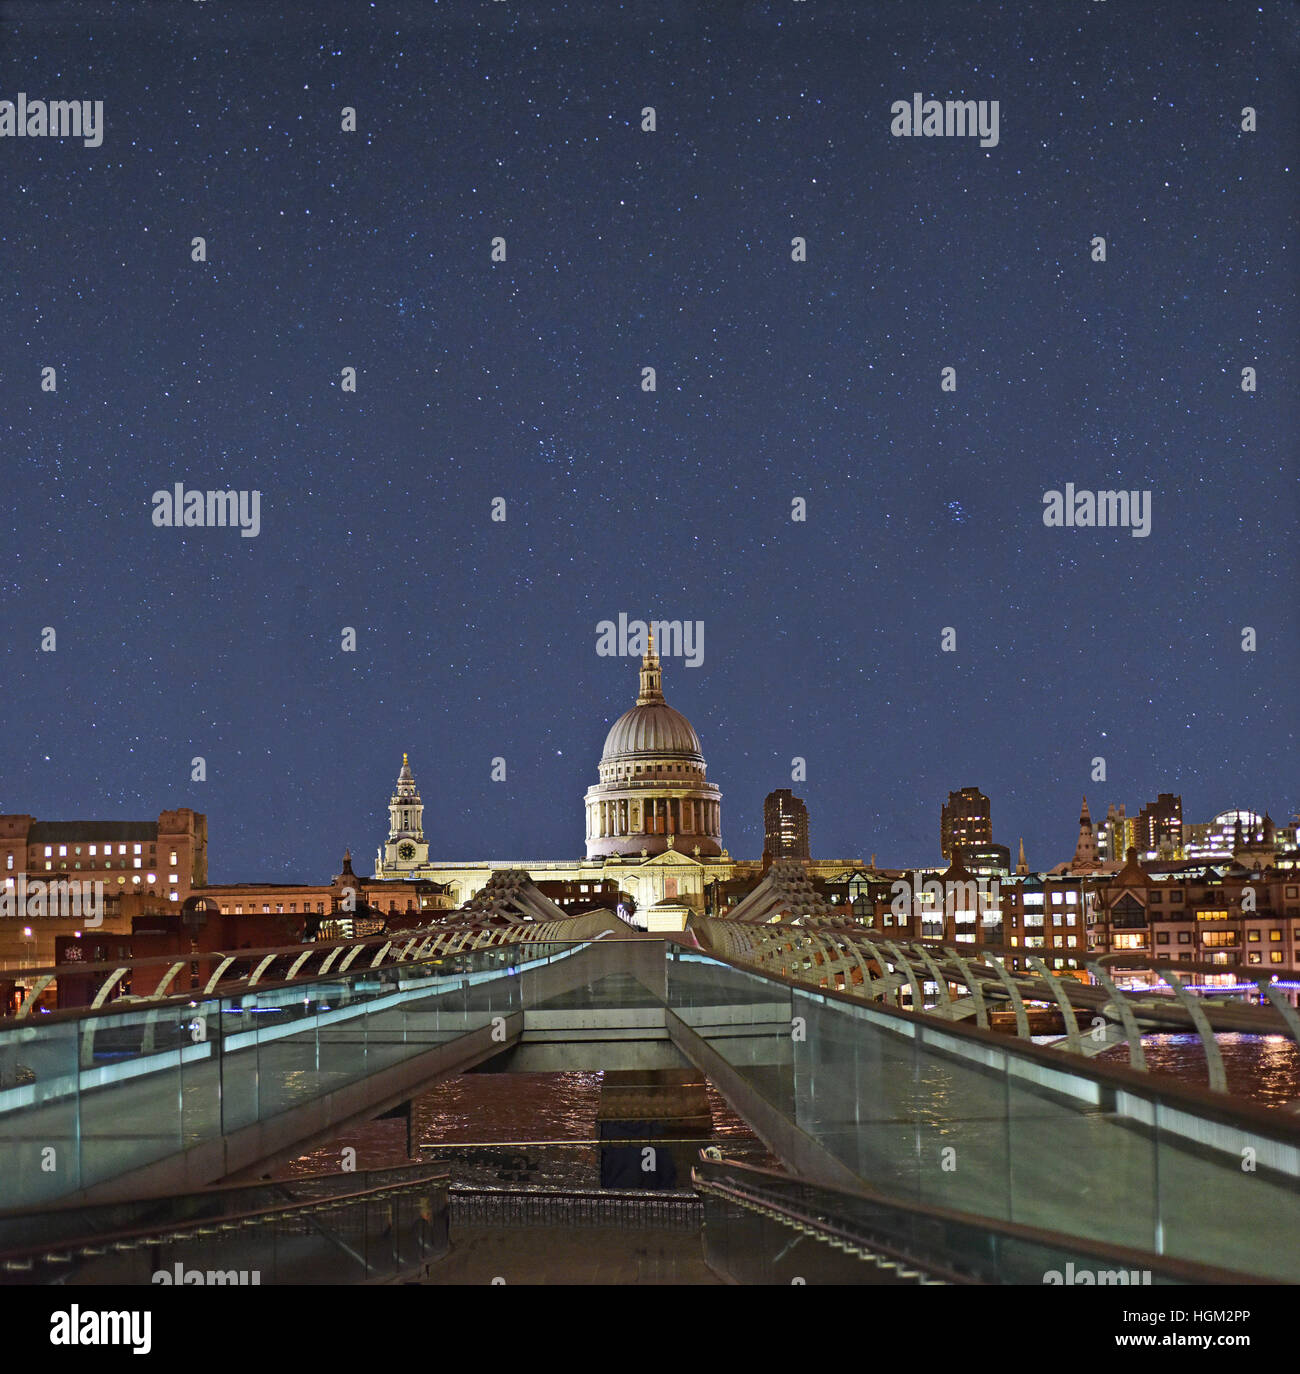 The Millennium Bridge and the Great Dome of St. Paul's cathedral in London against a clear night sky. - Stock Image